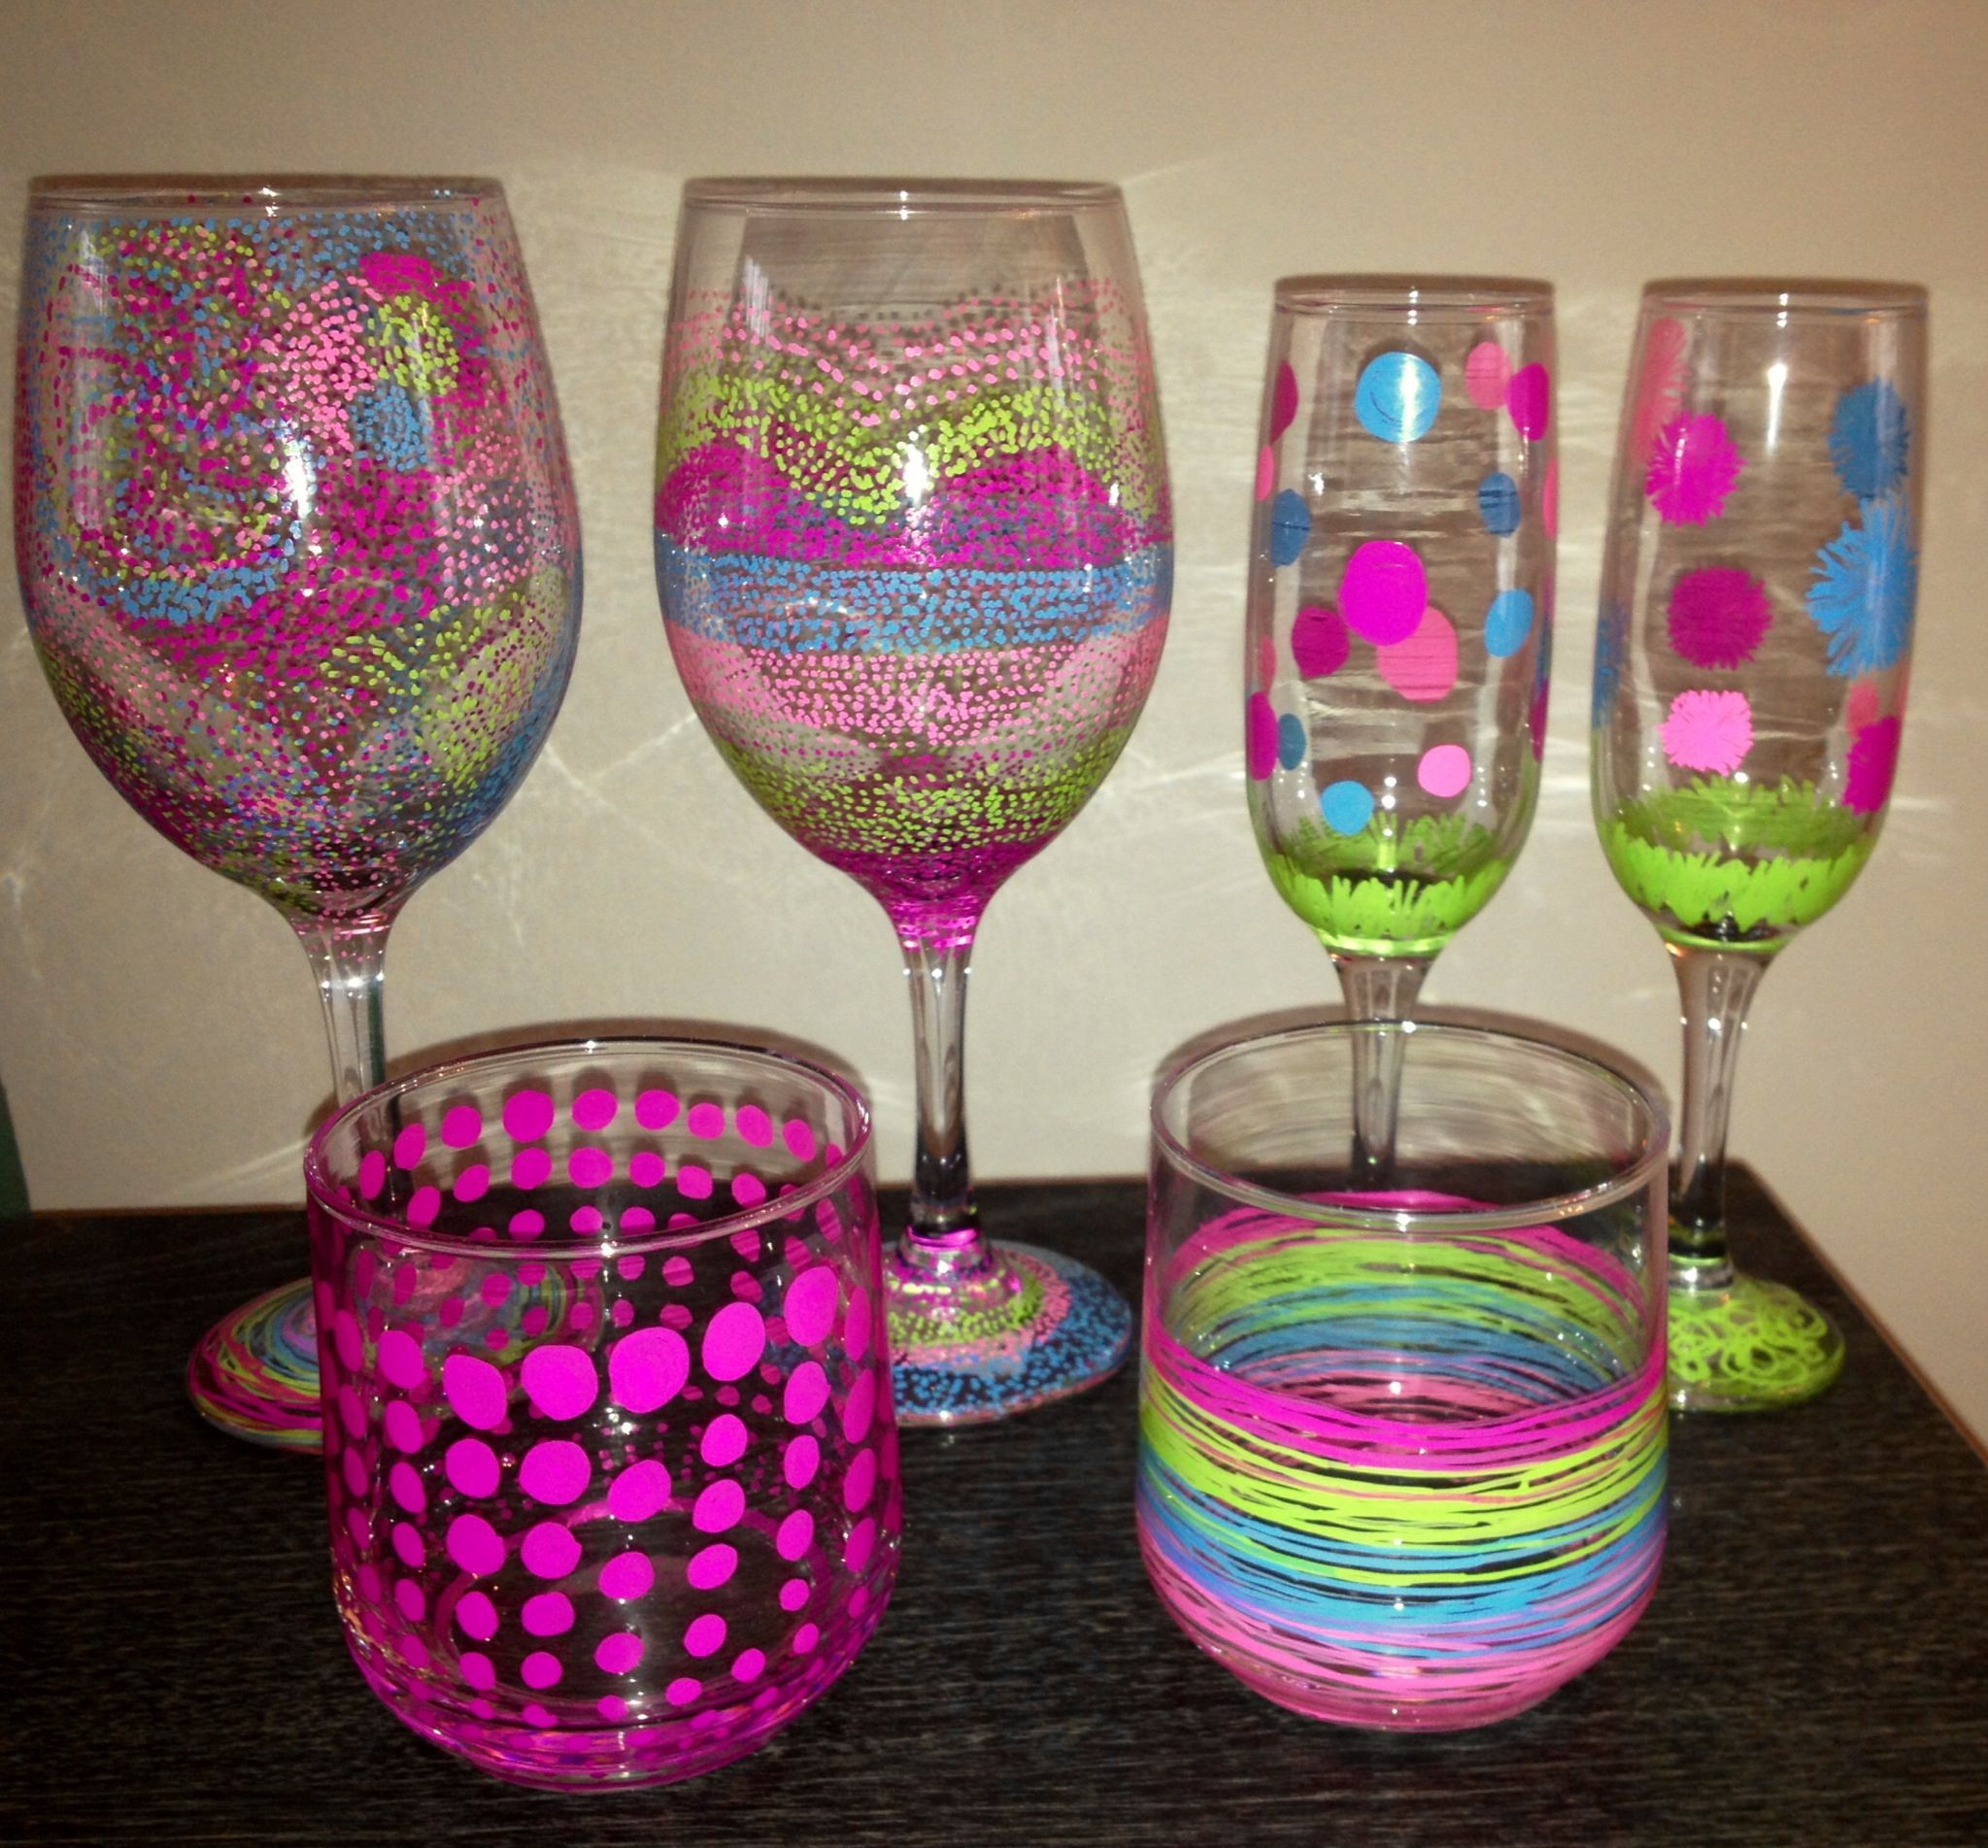 25 best ideas about sharpie wine glasses on pinterest ForHow To Decorate Wine Glasses With Sharpies